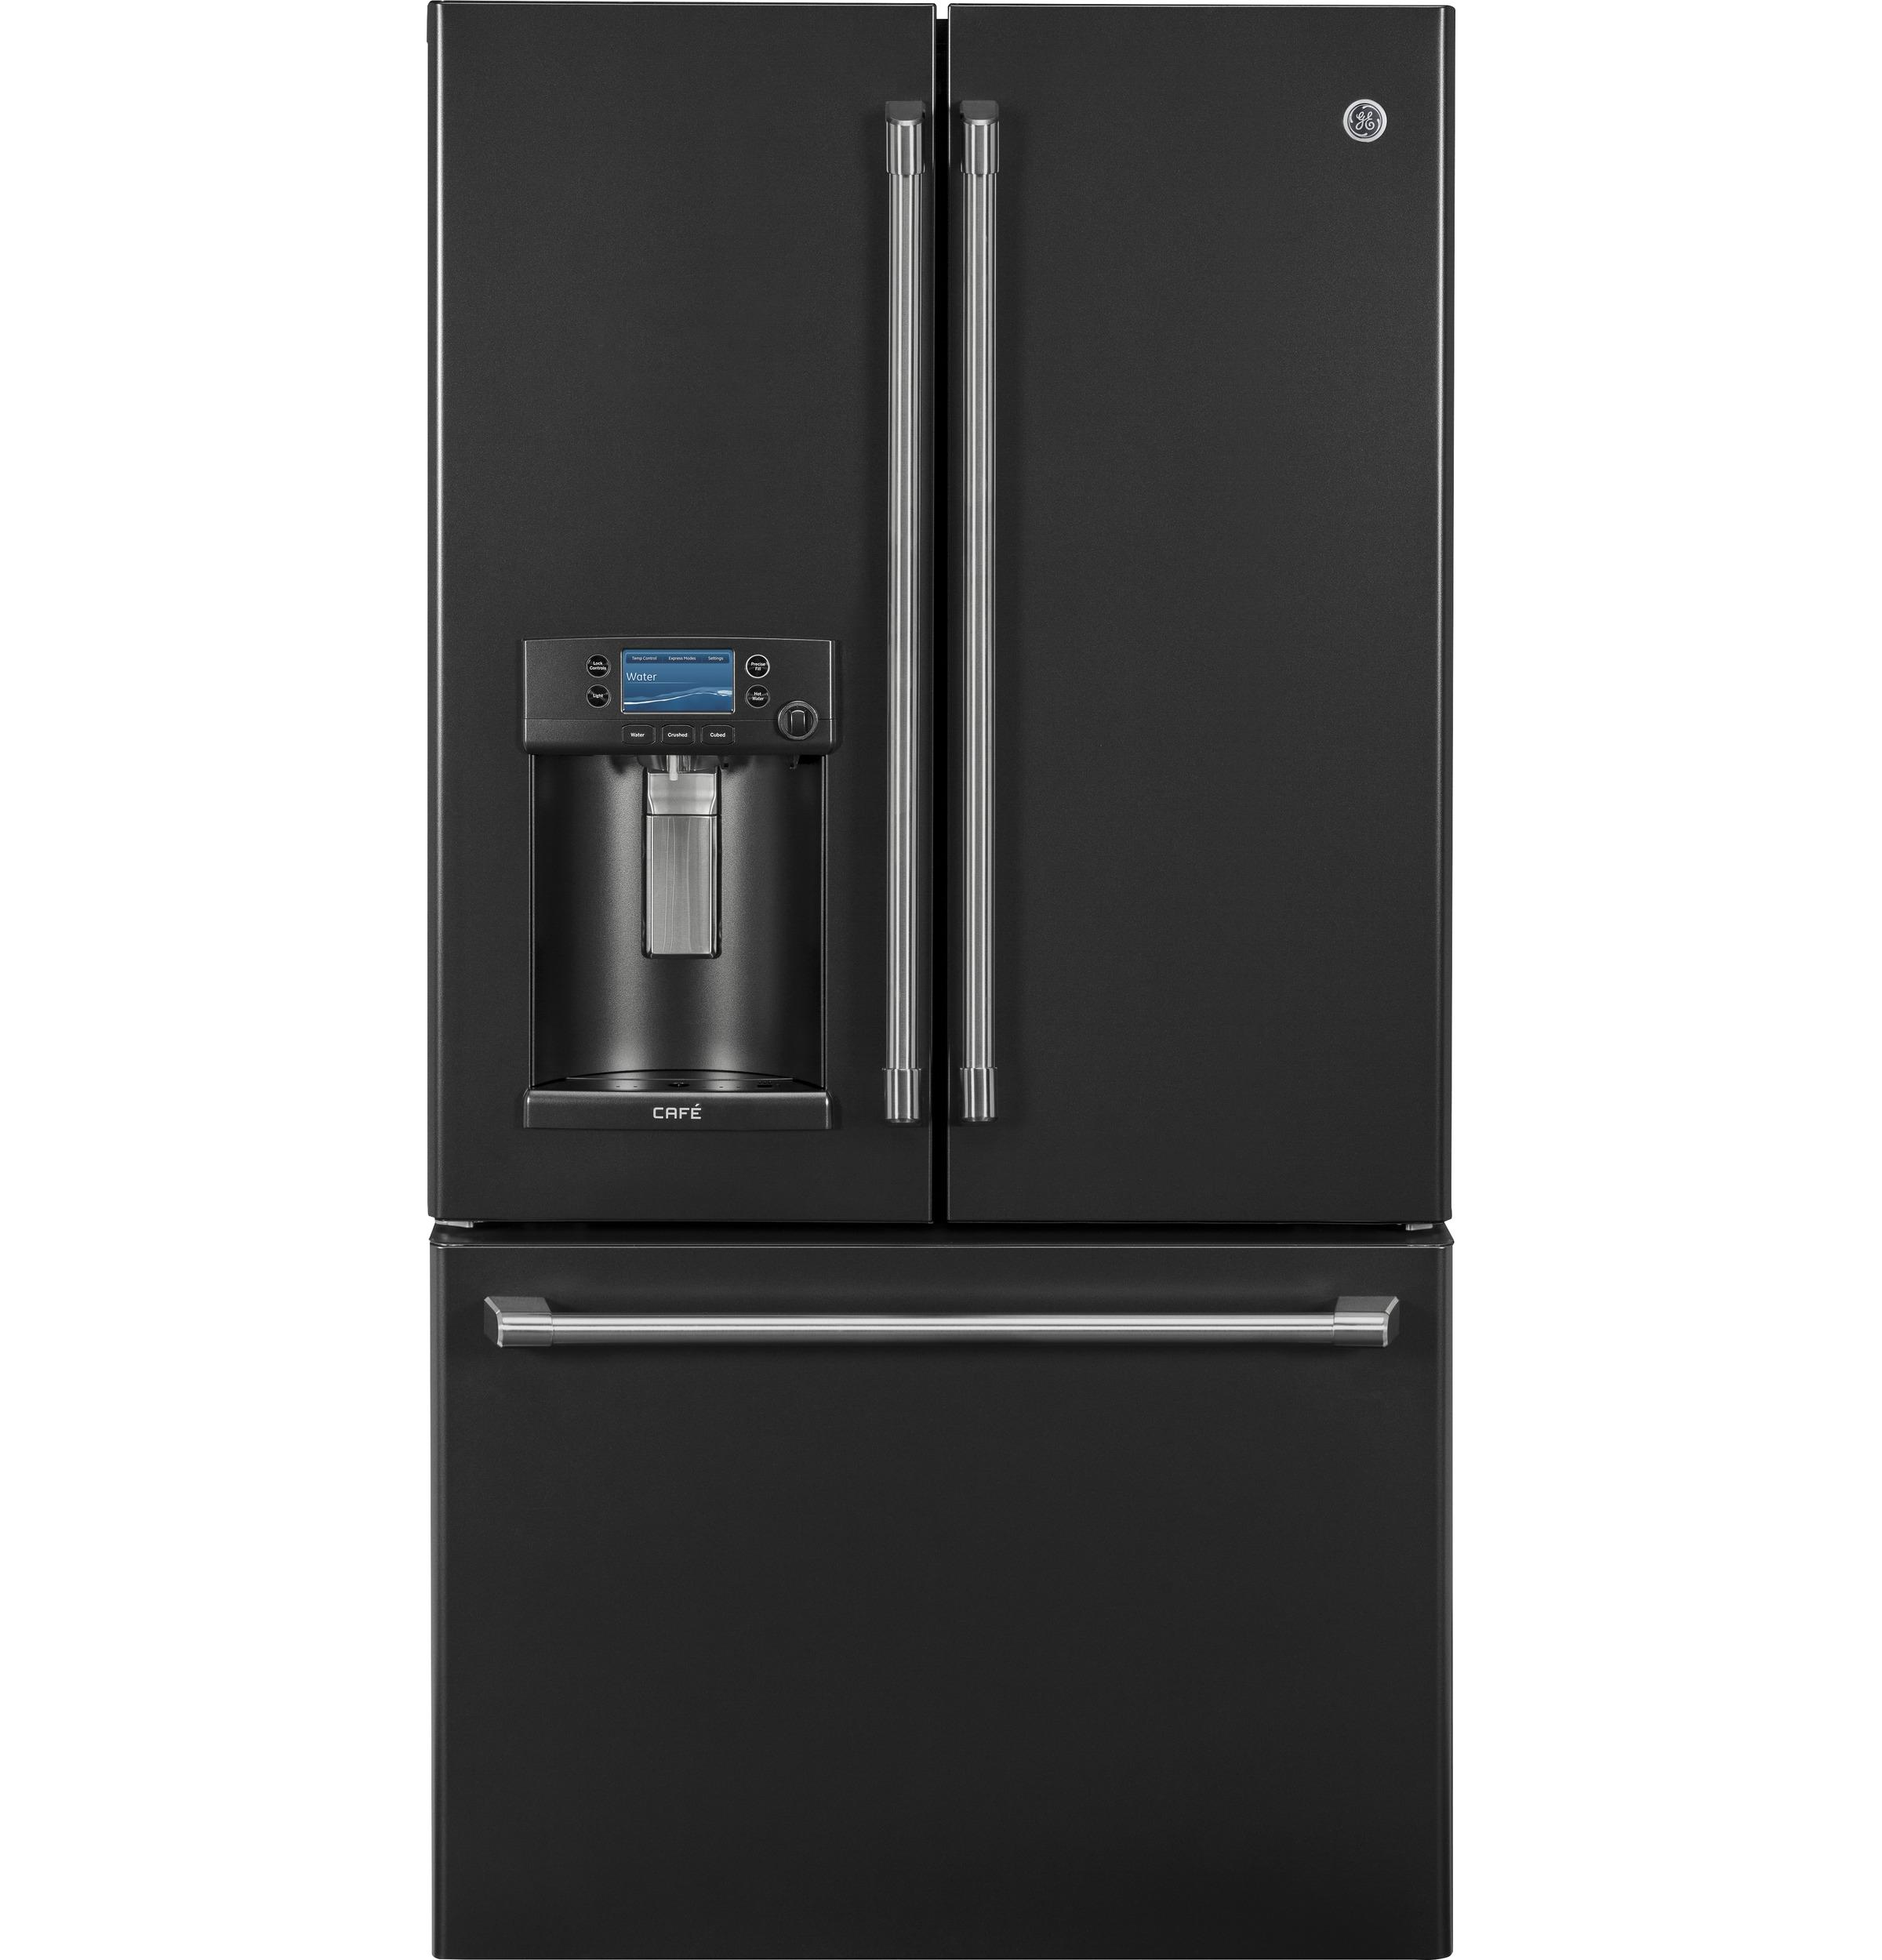 GE Cafe(TM) Series ENERGY STAR(R) 27.8 Cu. Ft. French-Door Refrigerator with Keurig(R) K-Cup(R) Brewing System